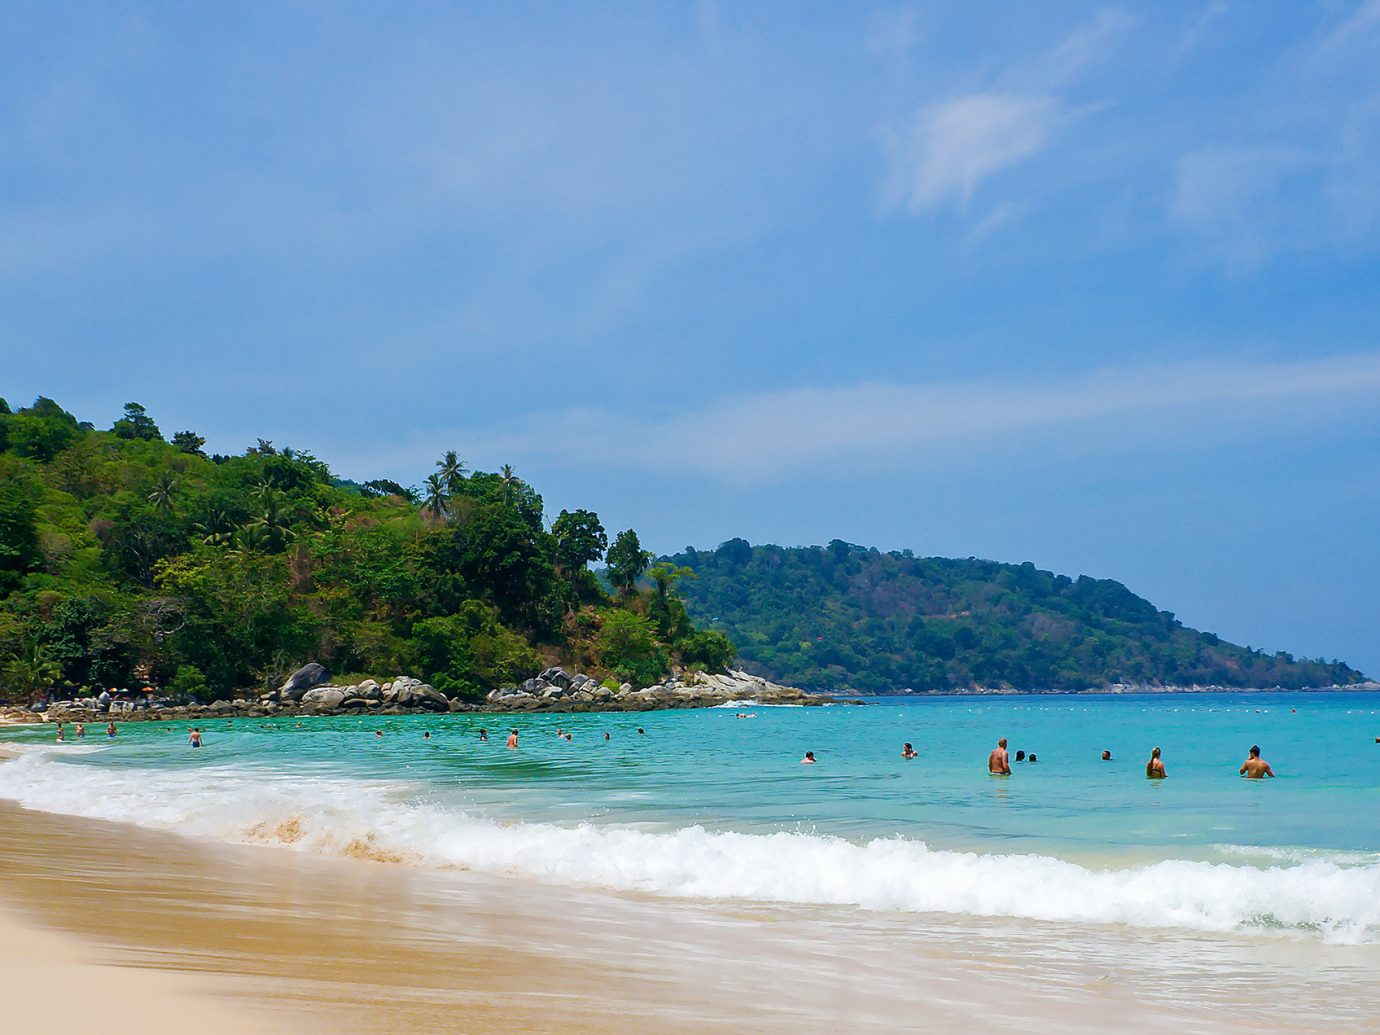 Kata Noi Beach, Phuket, Trip Ideas water sky outdoor Beach Nature body of water shore Sea Ocean Coast people vacation caribbean bay wind wave tropics wave Island cape cove swimming day sandy